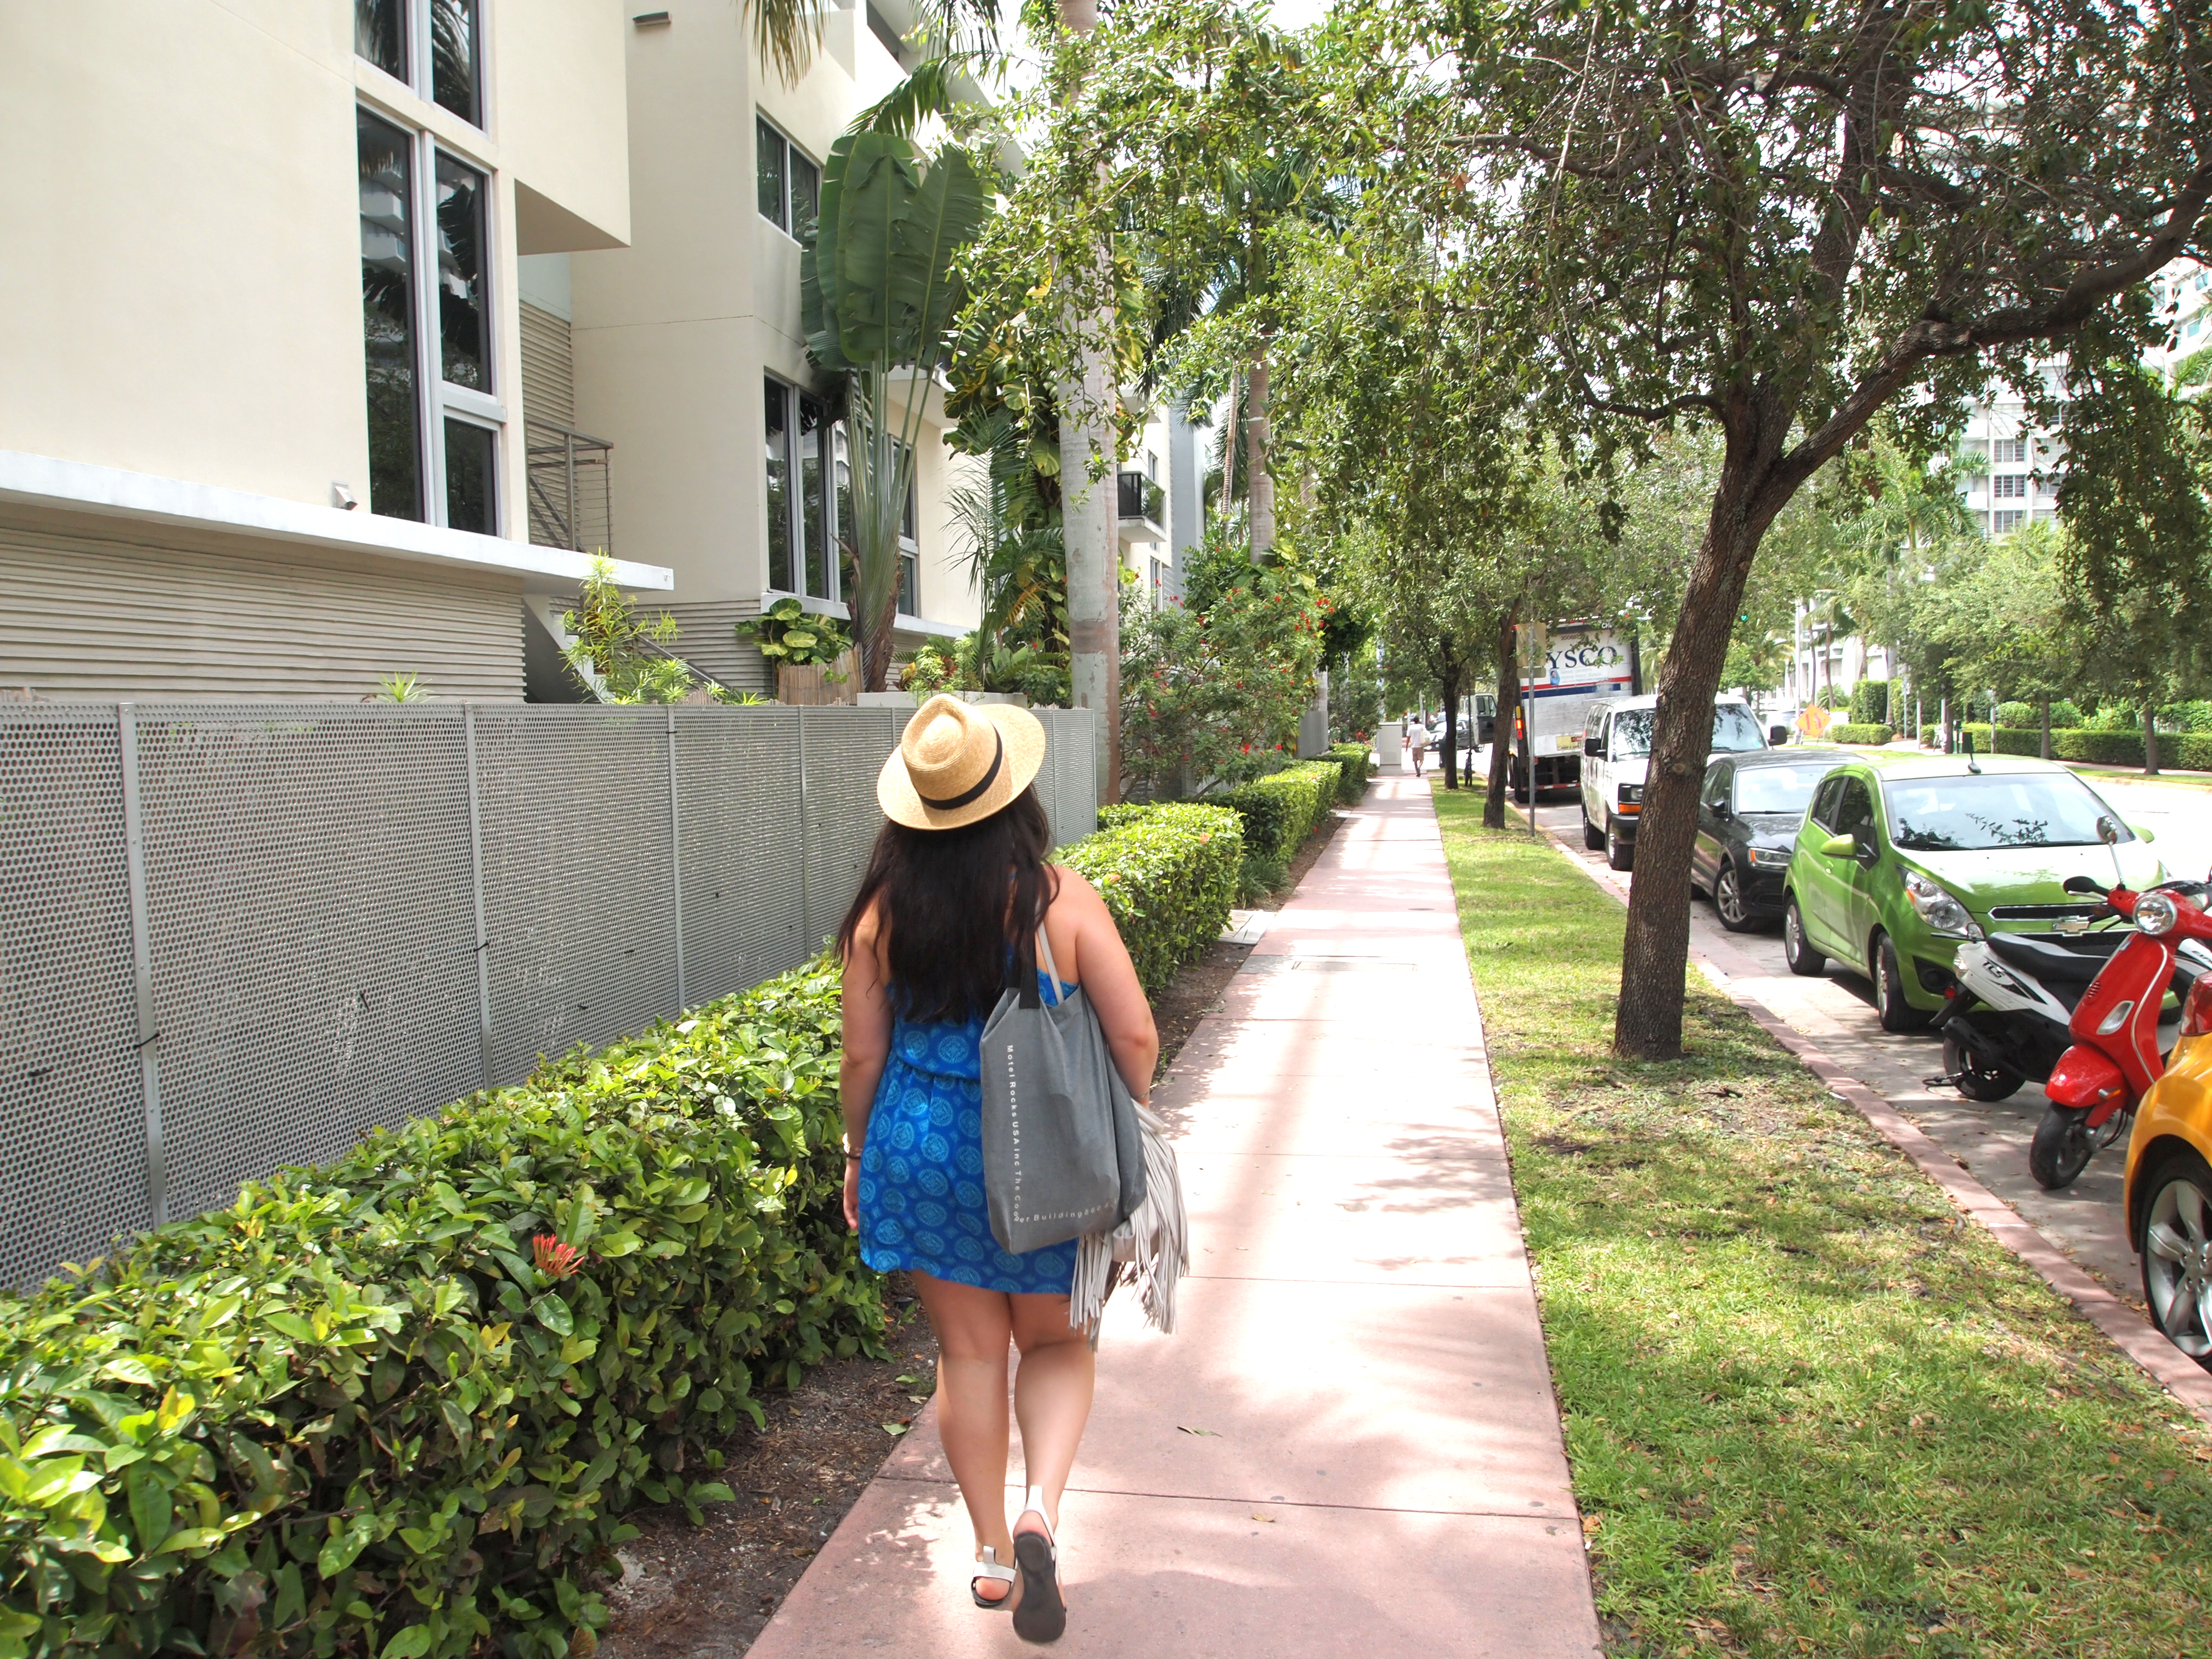 South Beach Miami Travel Diary - Michelle Christina Larsen